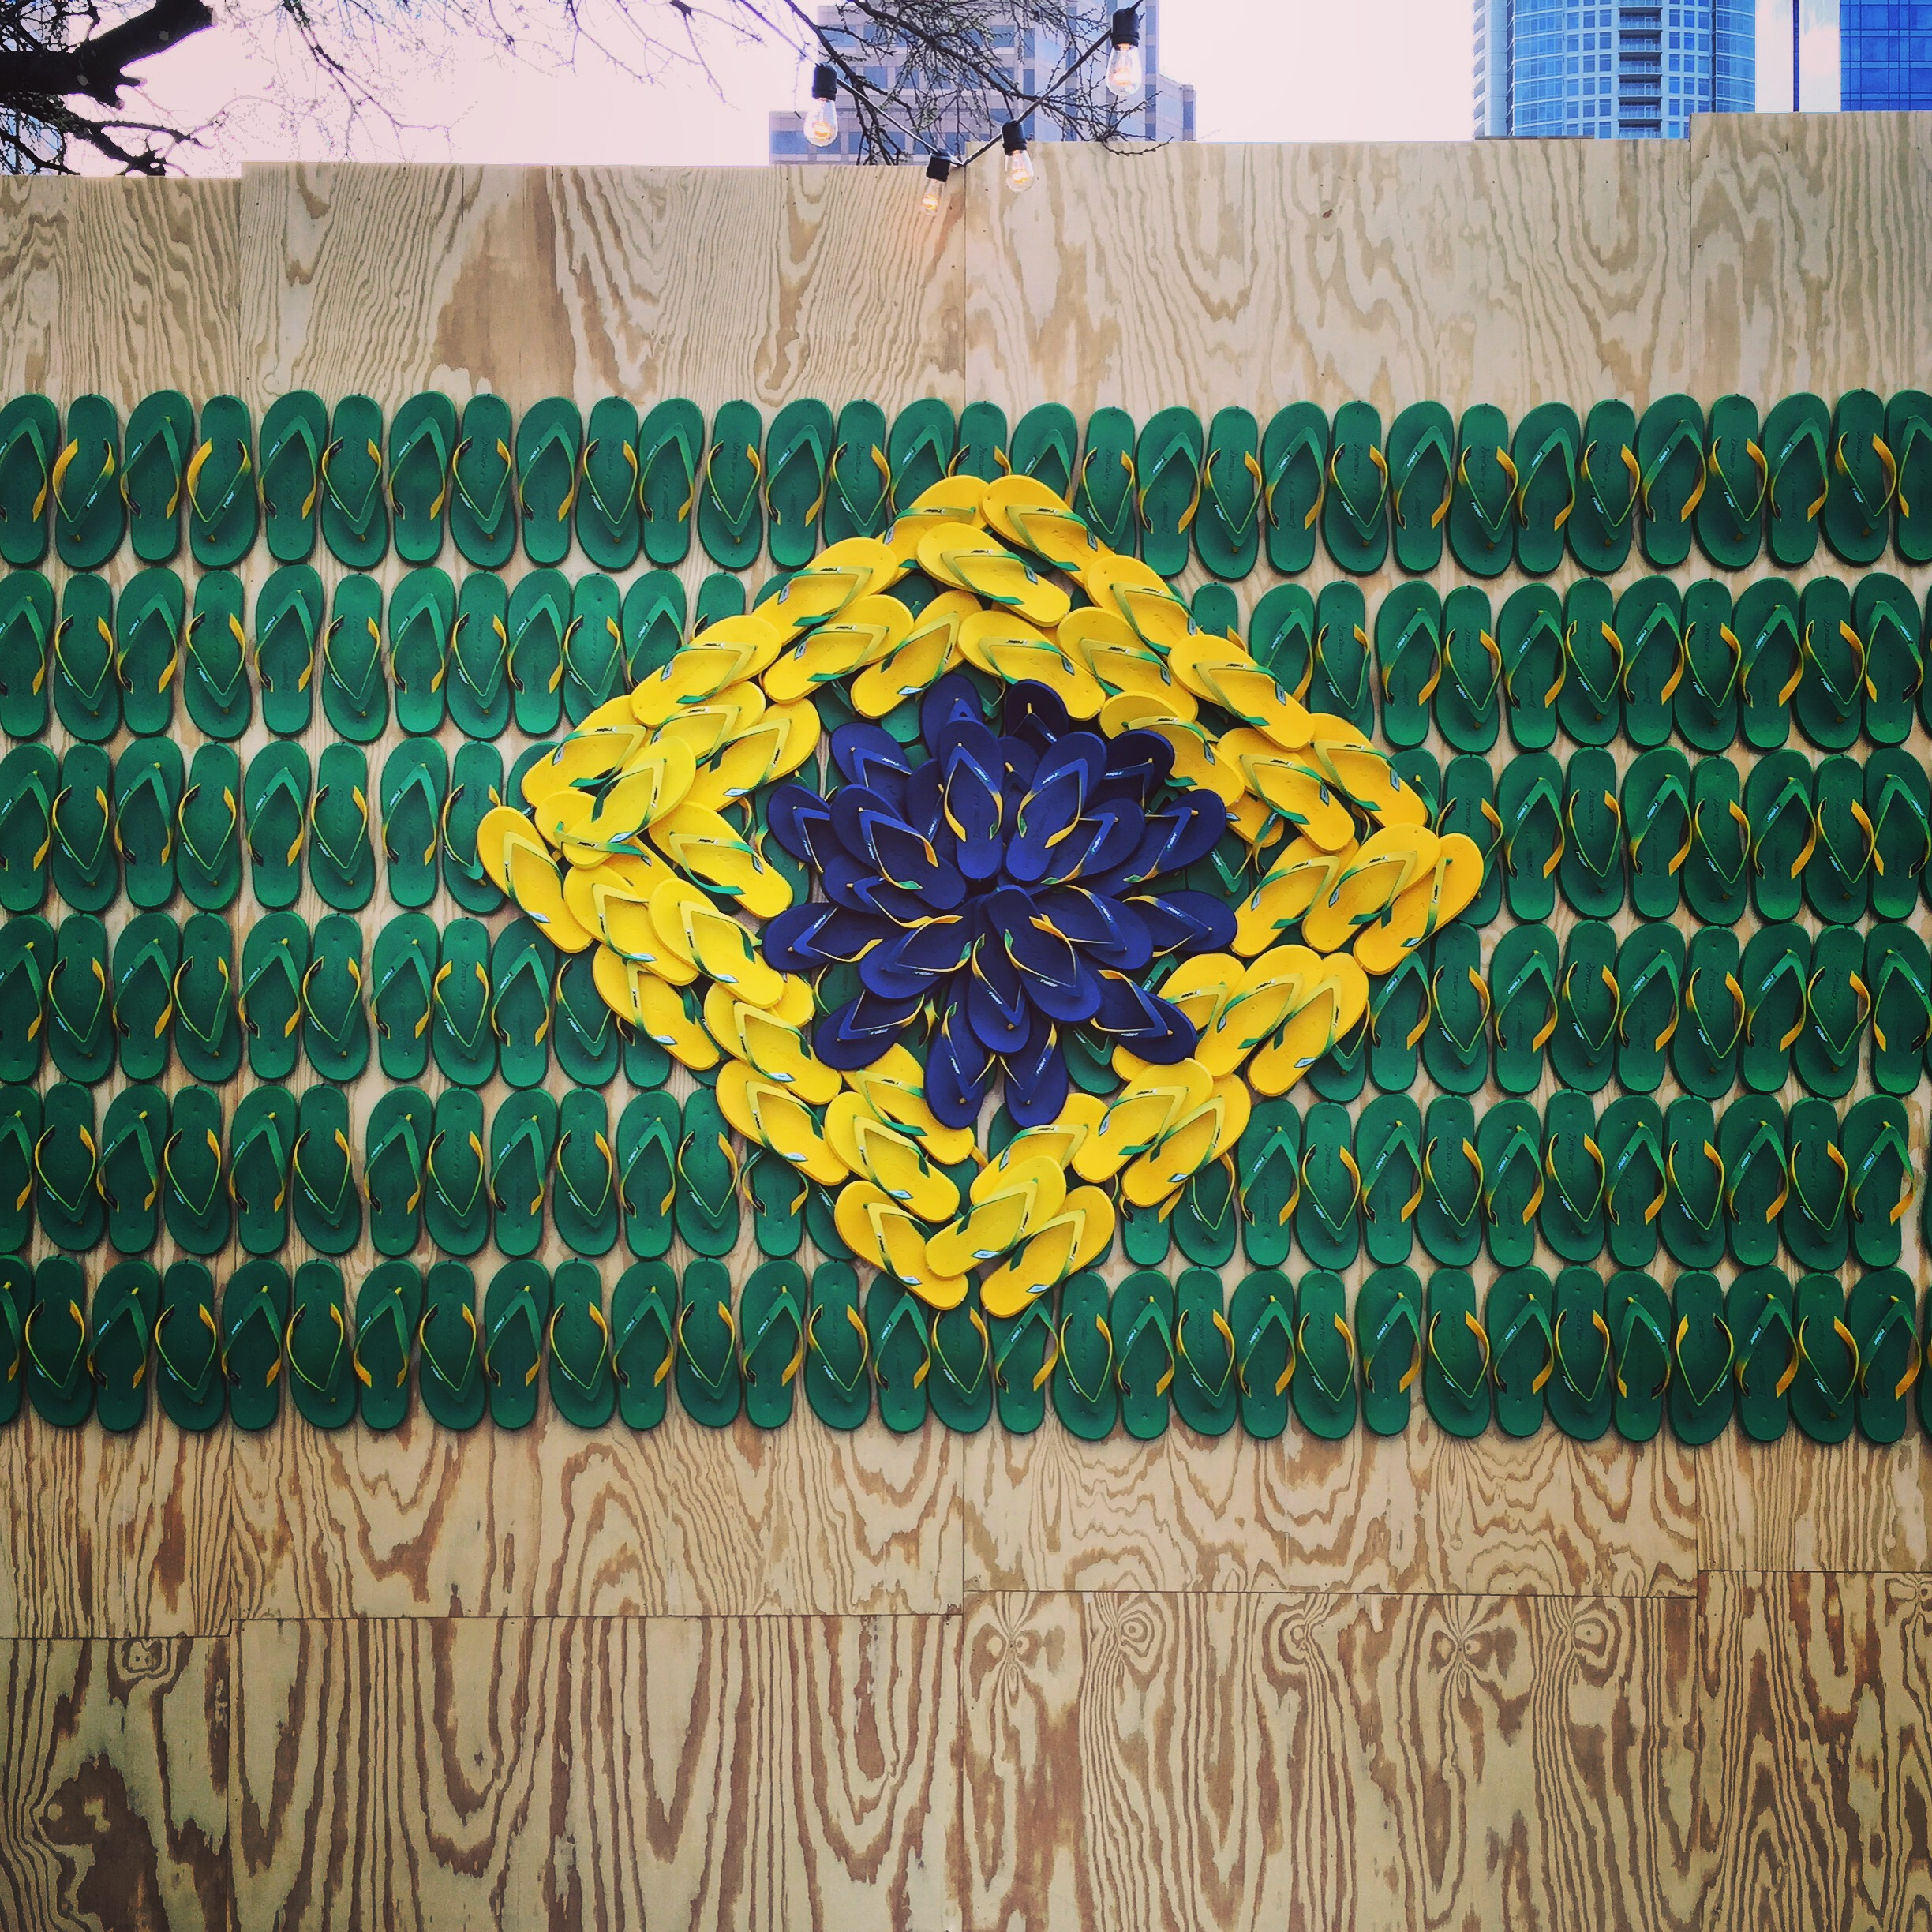 Brazilian flag made out of sandals